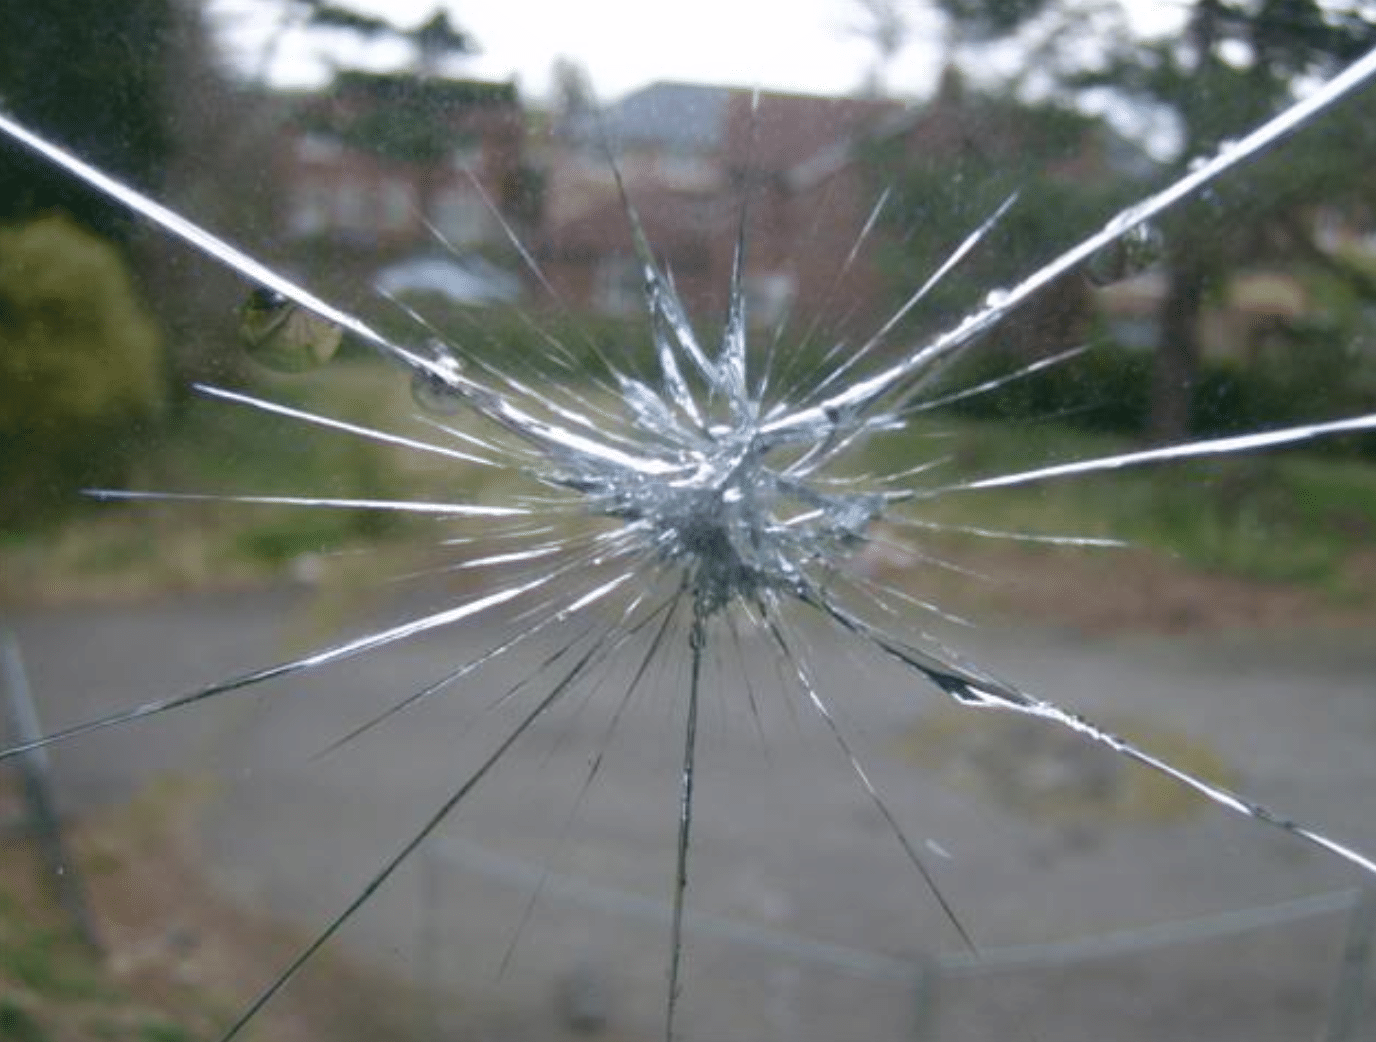 Common Causes Of Cracks In Windshields